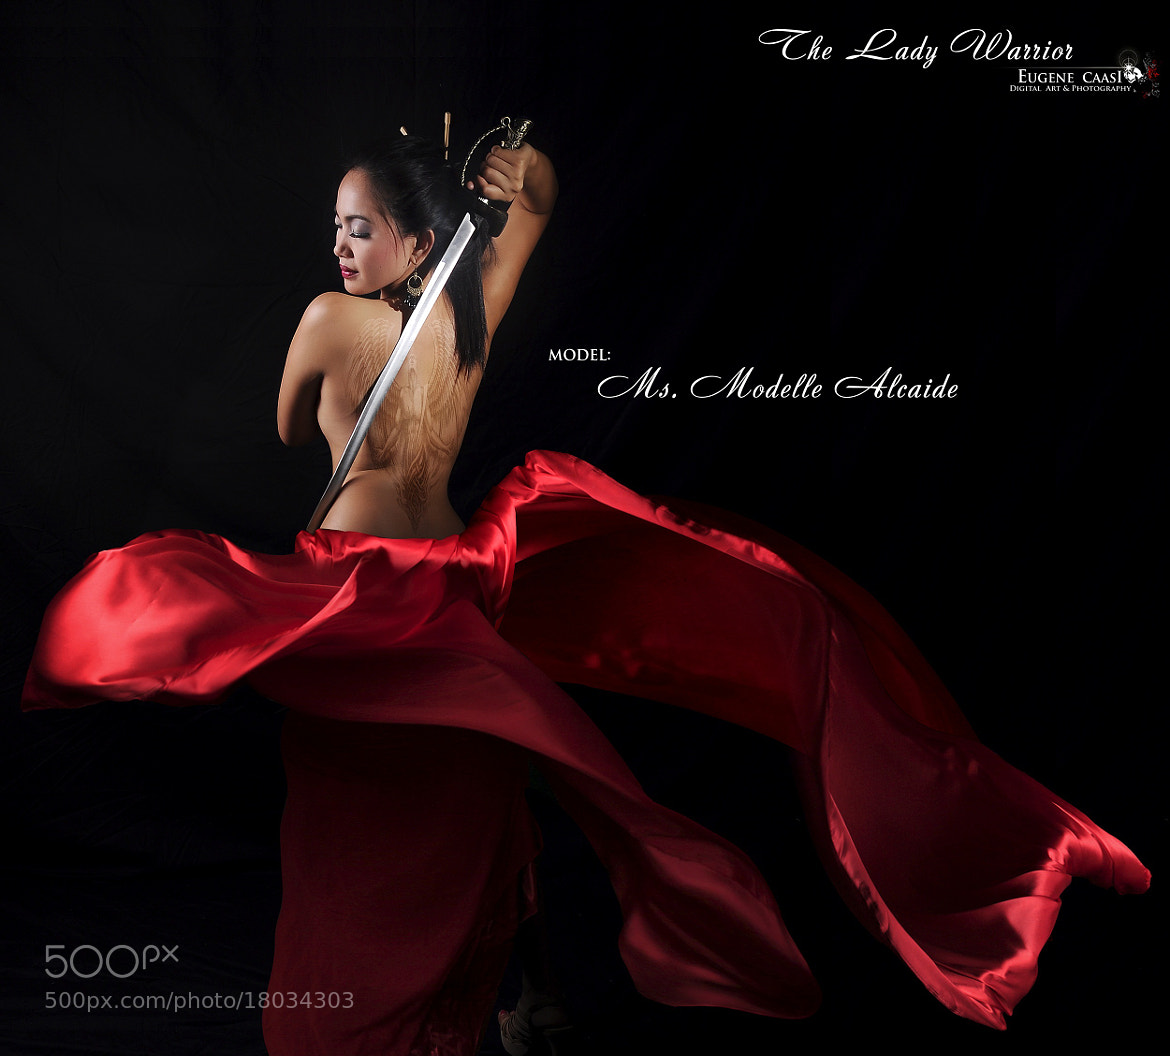 Photograph THE LADY WARRIOR 3 by Eugene Caasi on 500px